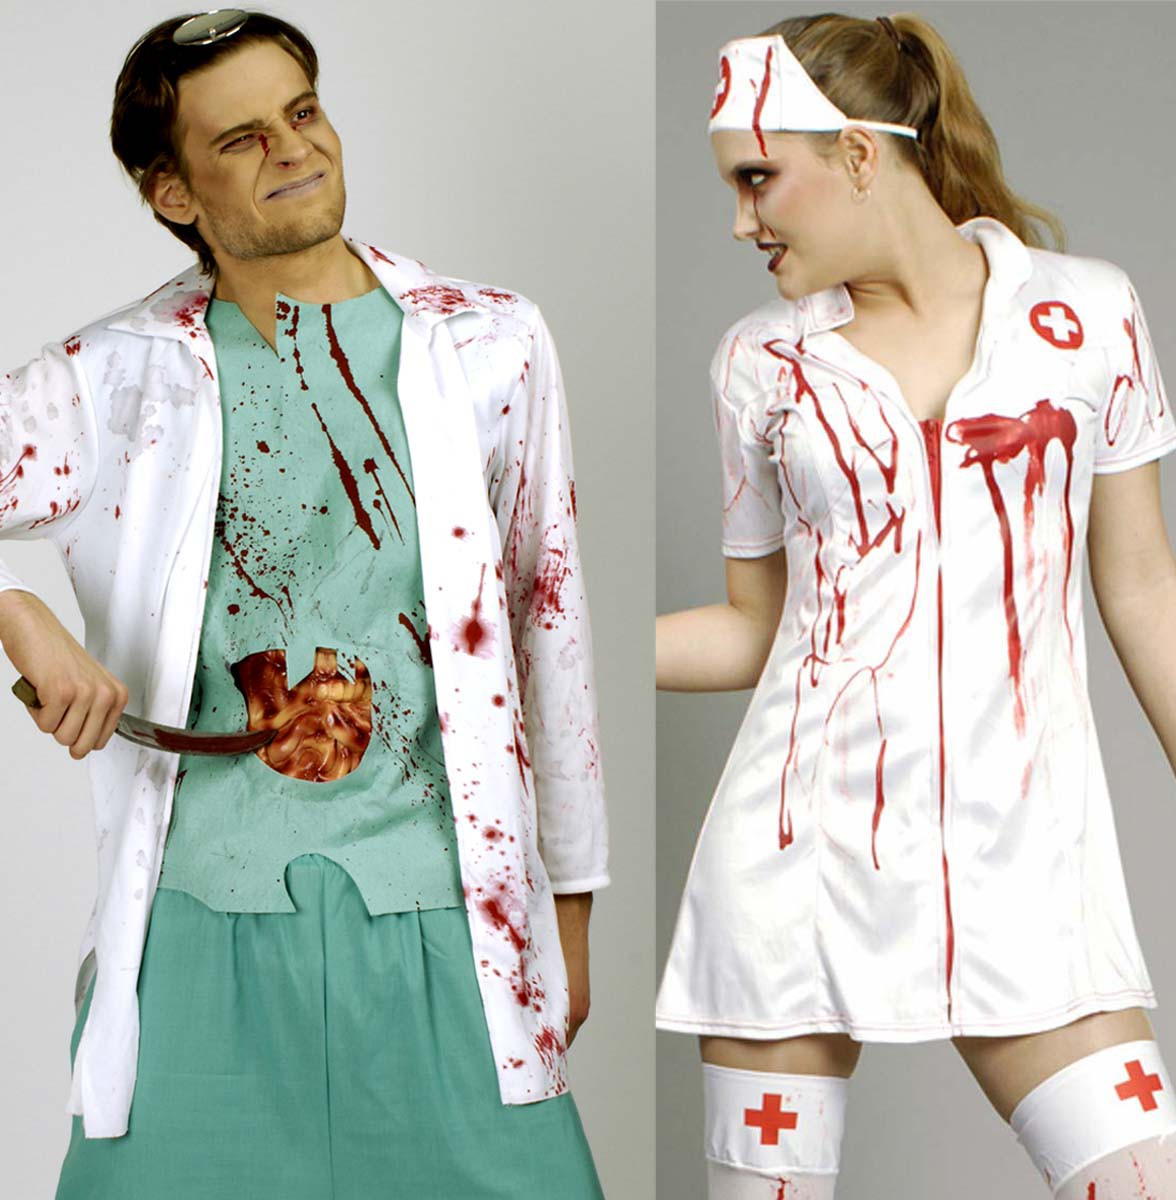 zombie arzt kost m blutiger chirurg doktor krankenschwester halloween ebay. Black Bedroom Furniture Sets. Home Design Ideas